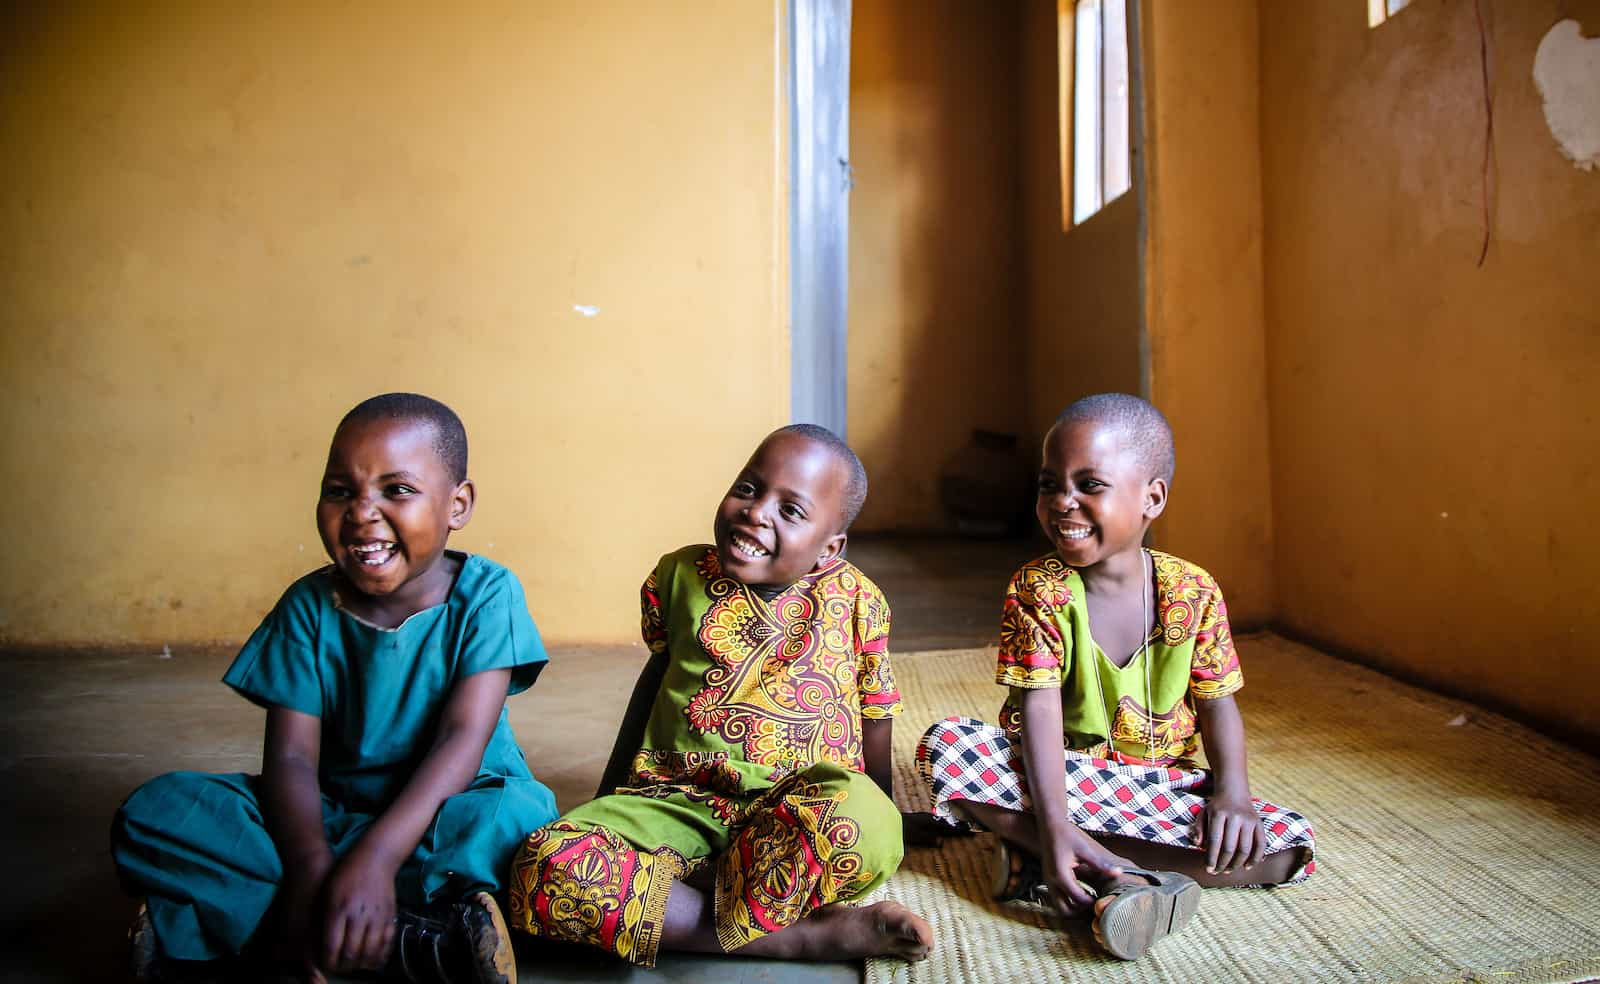 Three young children in bright colored clothes sit on the floor inside a home.